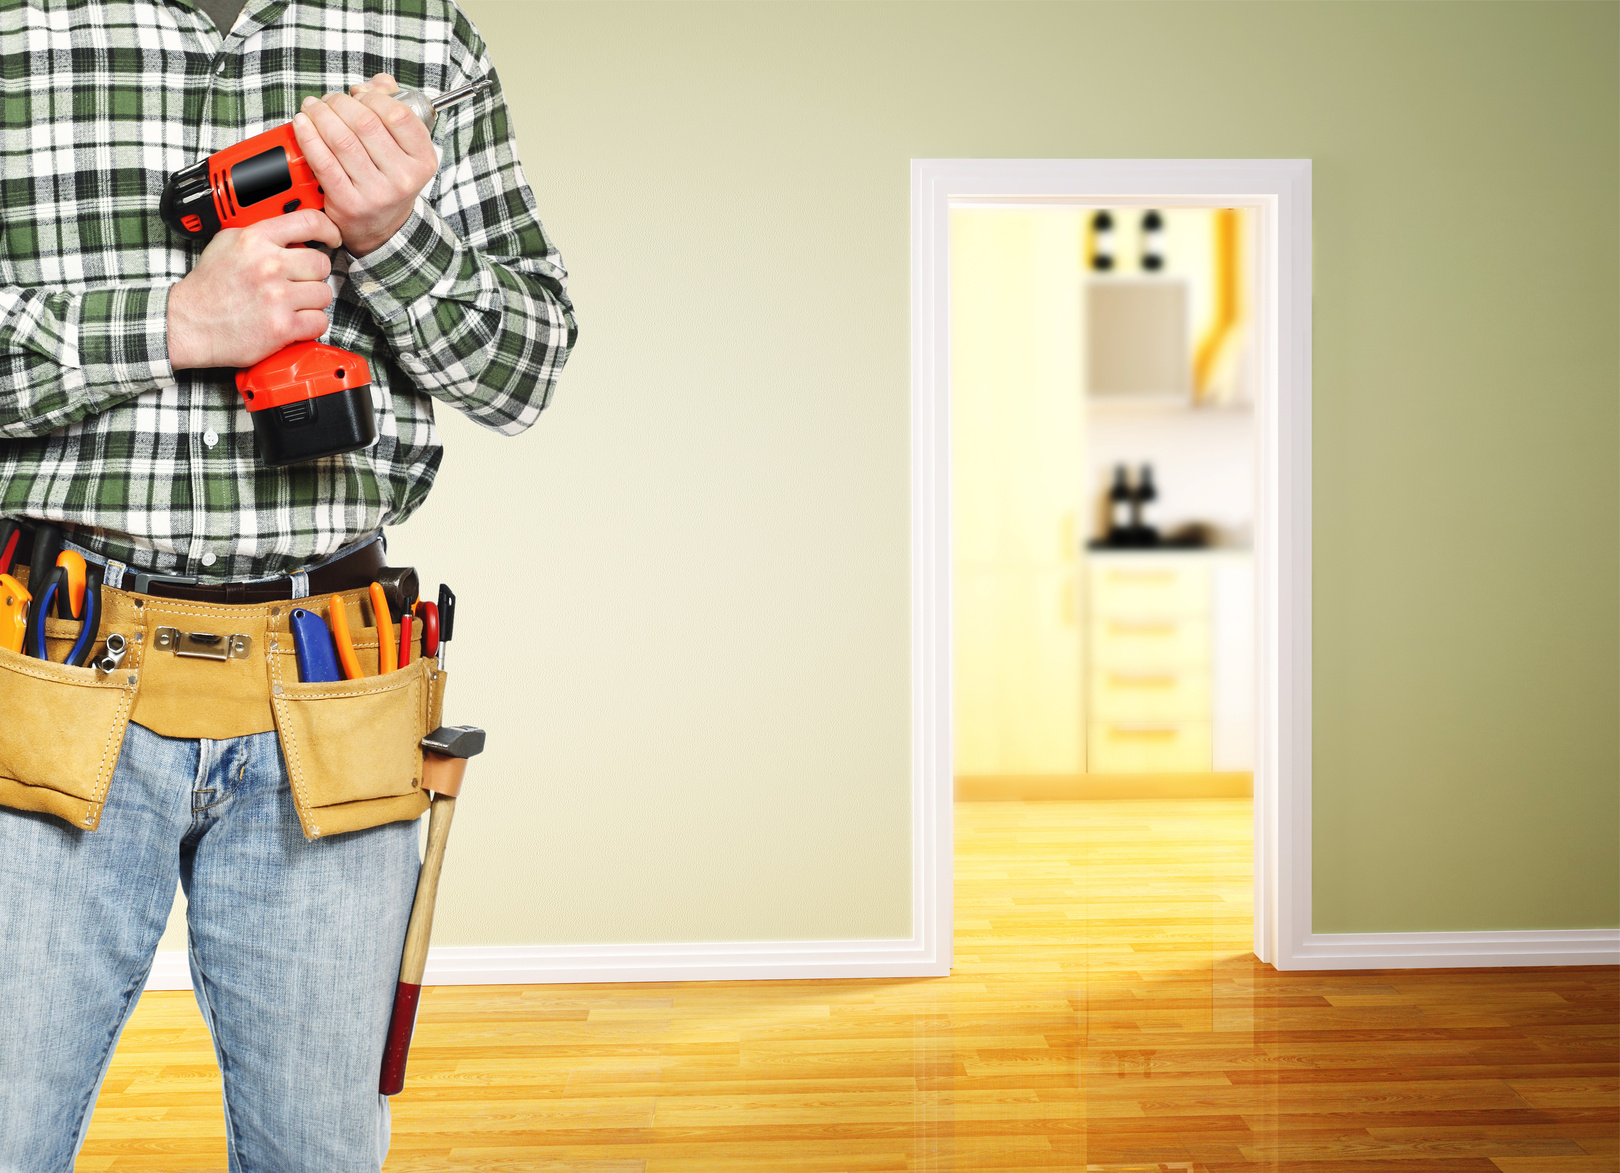 3 Things to Look for When Hiring a Contractor